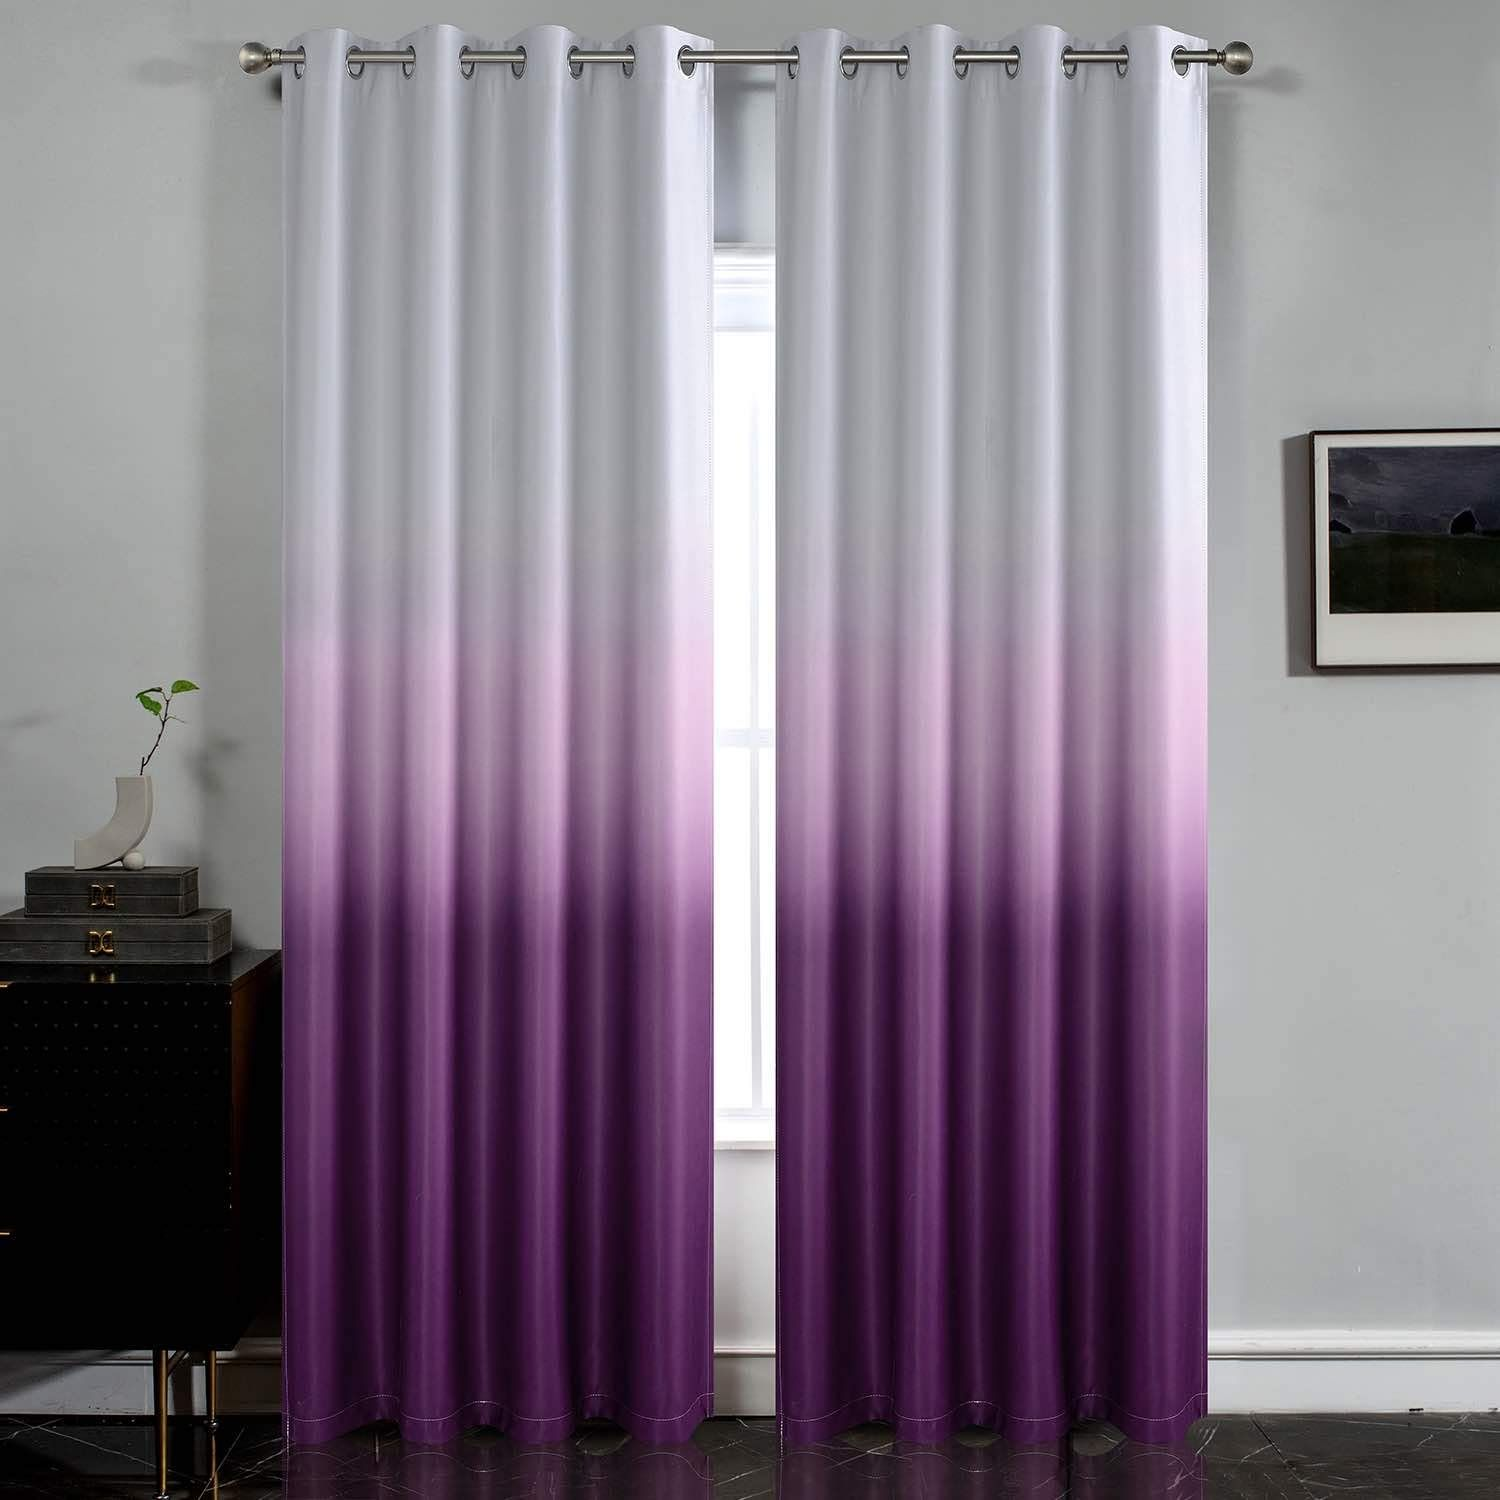 Pin By Lobna Abd El Aziz On Ombre In 2020 Purple Curtains